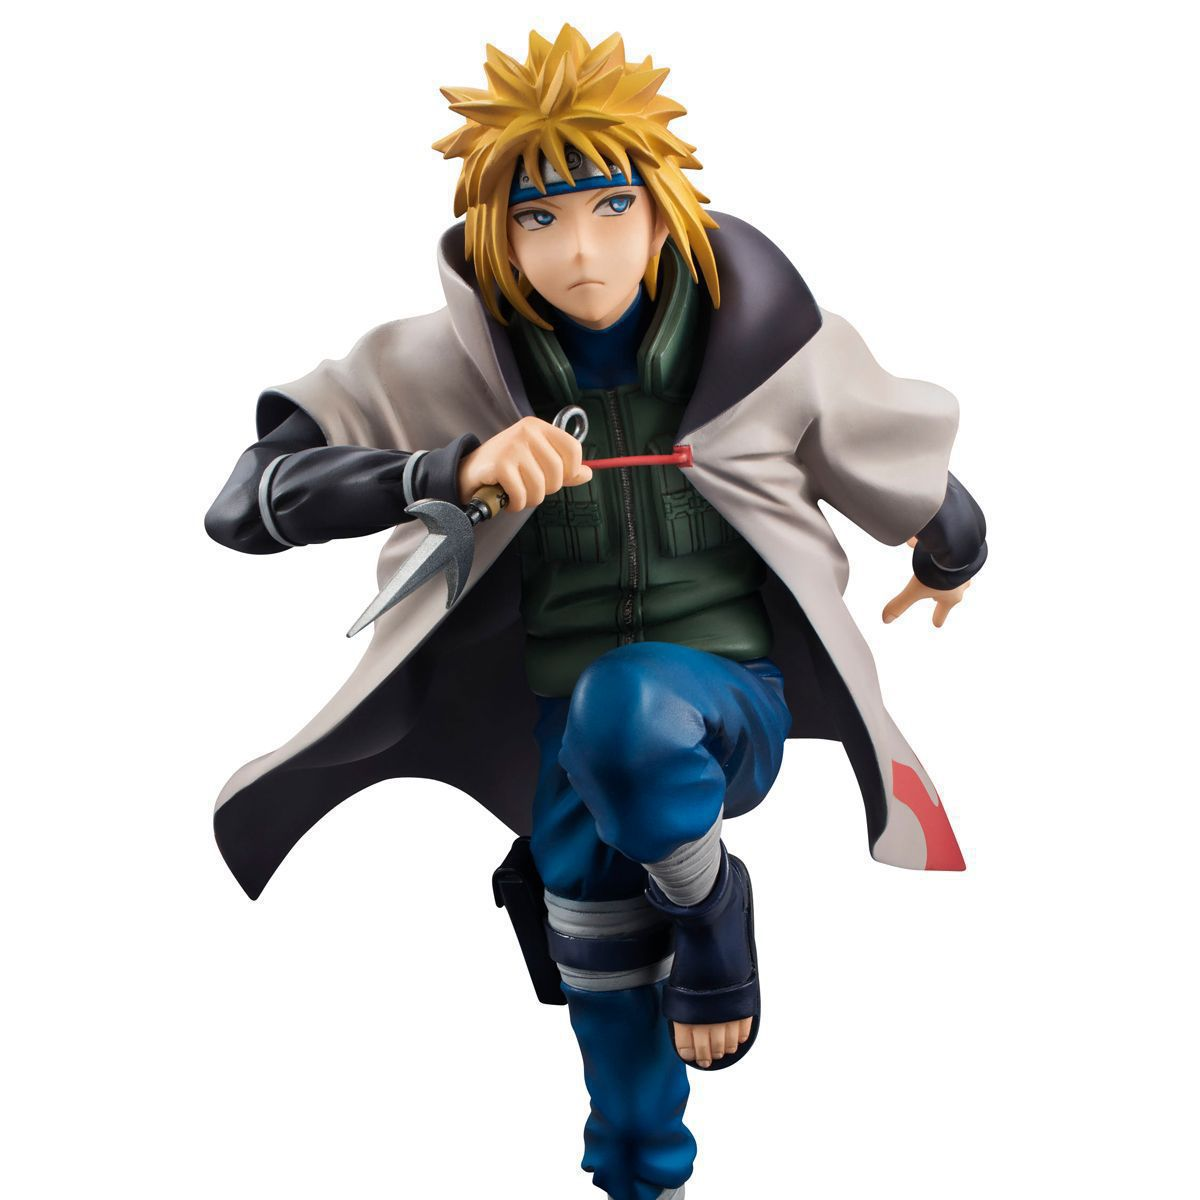 <font><b>Anime</b></font> Naruto Hurricane Minato Namikaze Fourth <font><b>Hokage</b></font> <font><b>PVC</b></font> <font><b>Action</b></font> <font><b>Figure</b></font> Figurine Resin Collection <font><b>Model</b></font> Toy Doll Gifts <font><b>Cosplay</b></font>